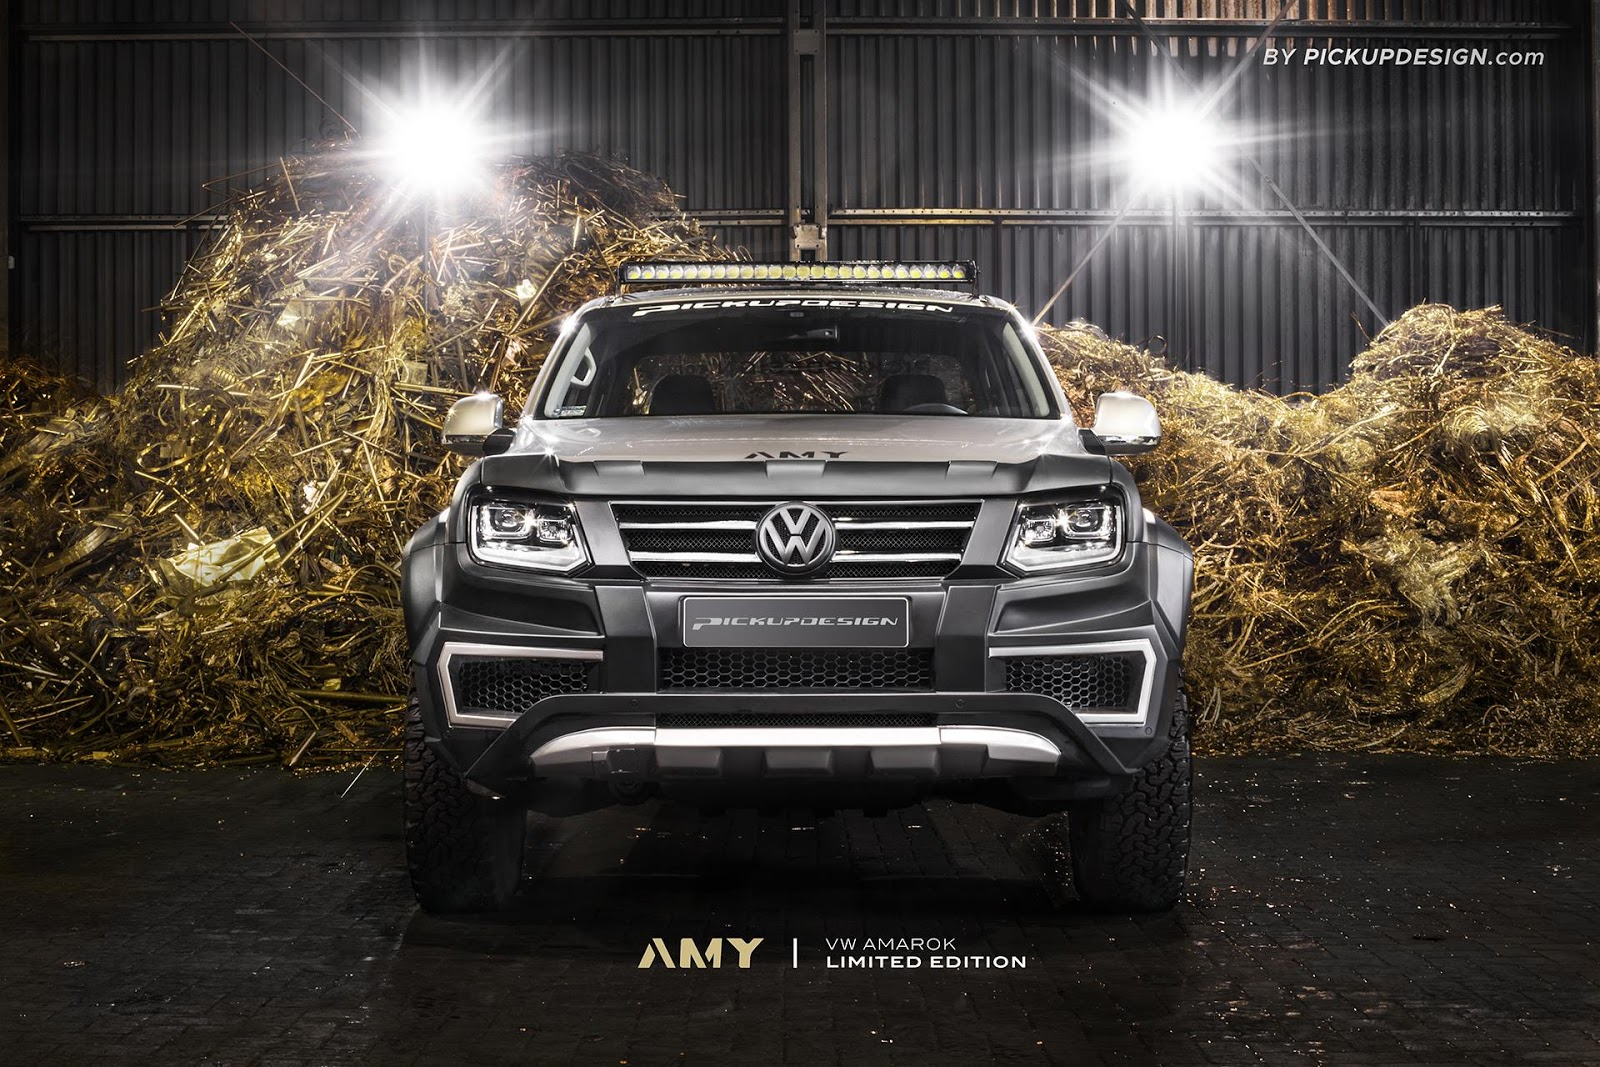 VW-Amarok-Pickup-Design-3